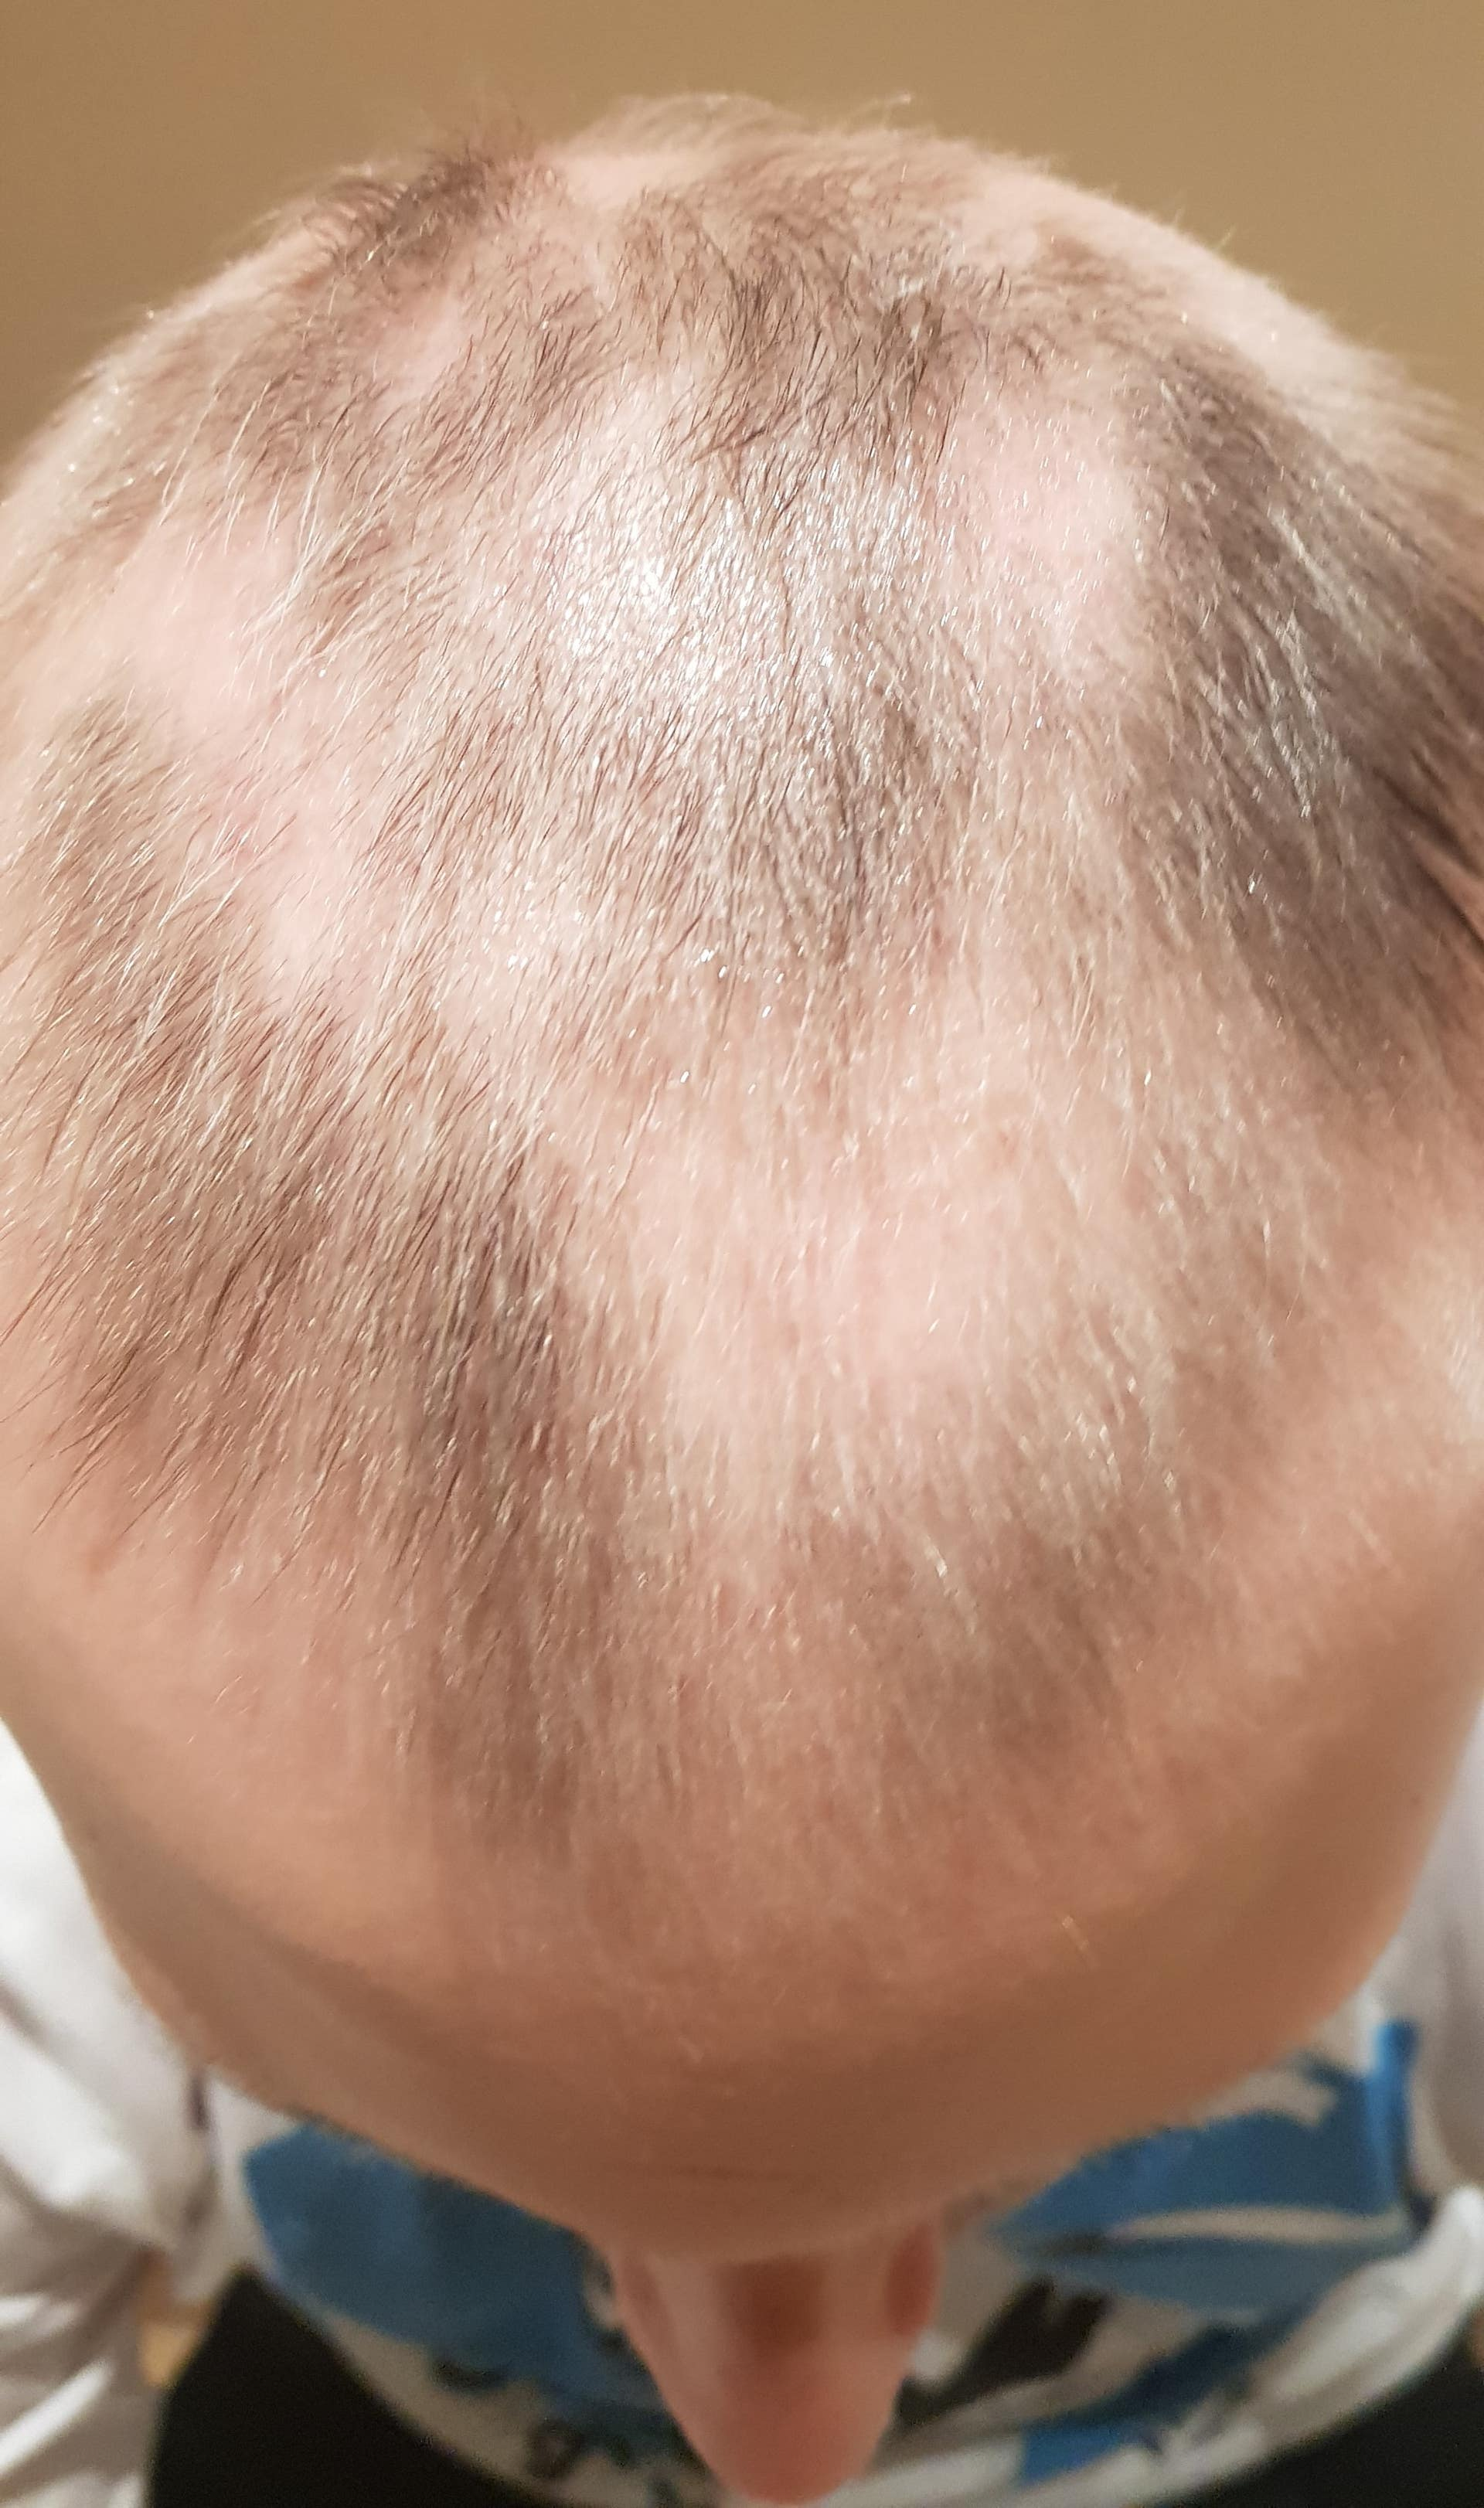 Hair regrowth is patchy from alopecia totalis